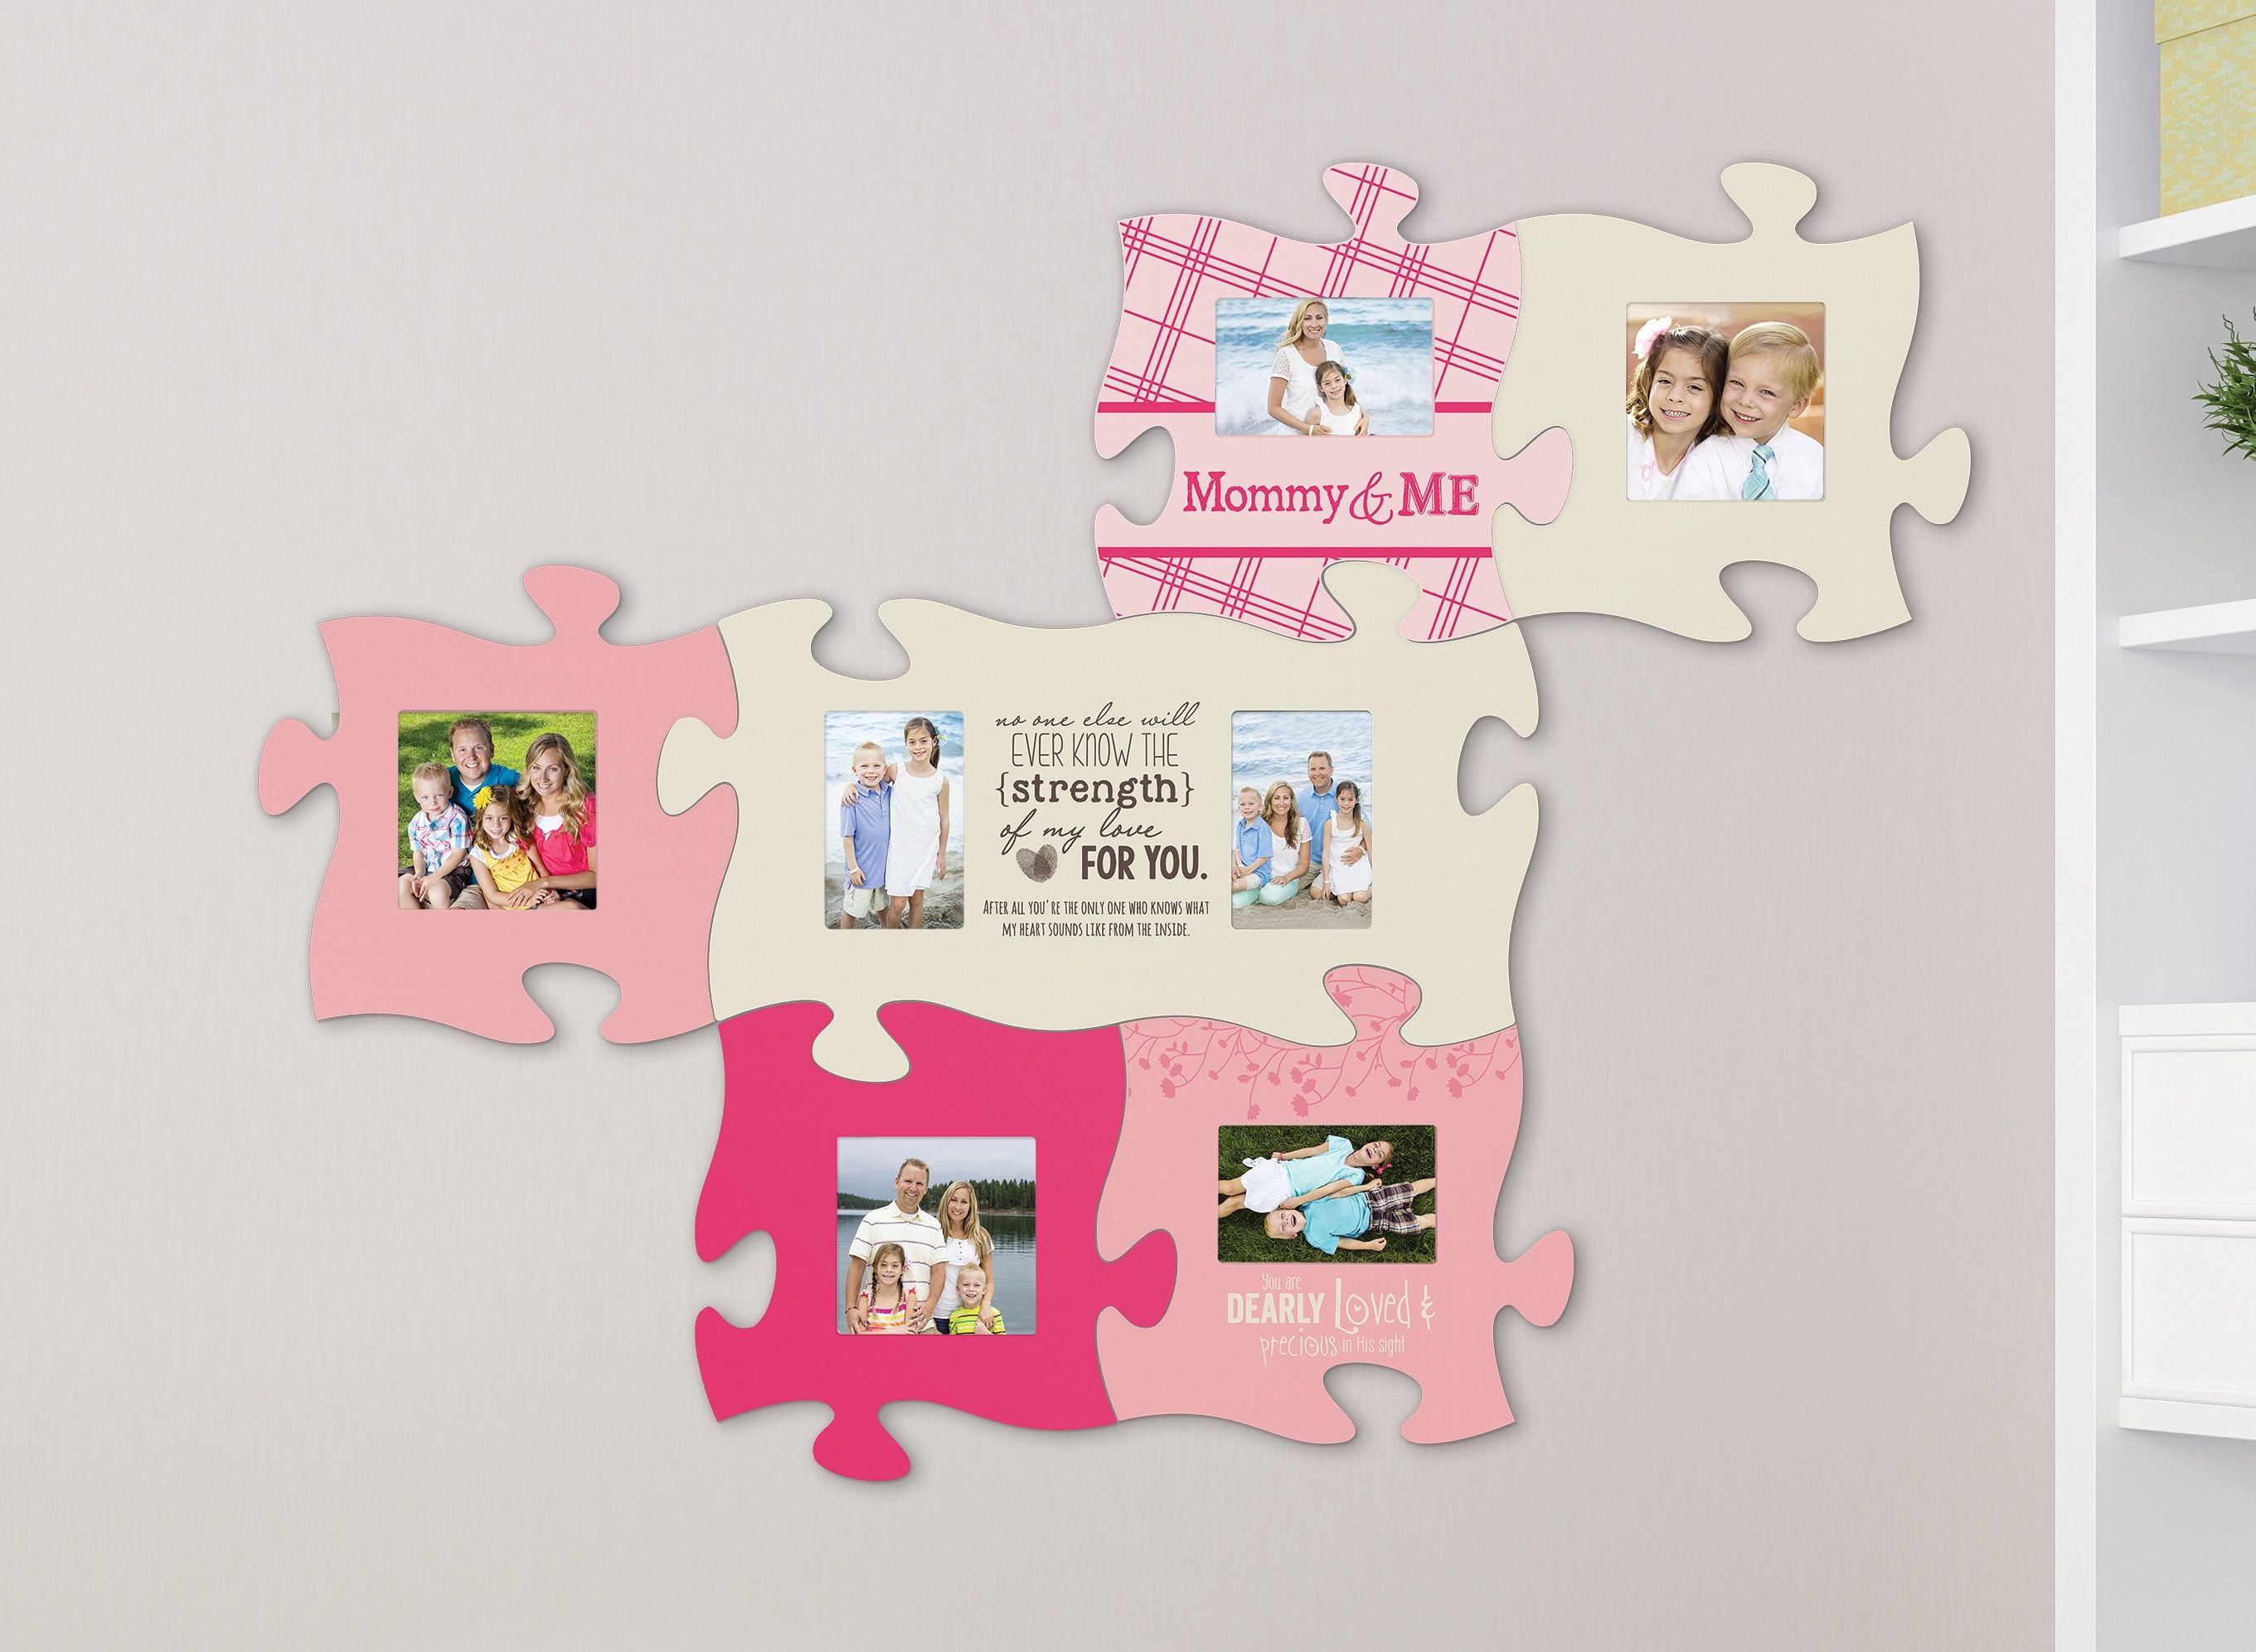 Puzzle Piece Your Family And Friends Together With This Wall Art